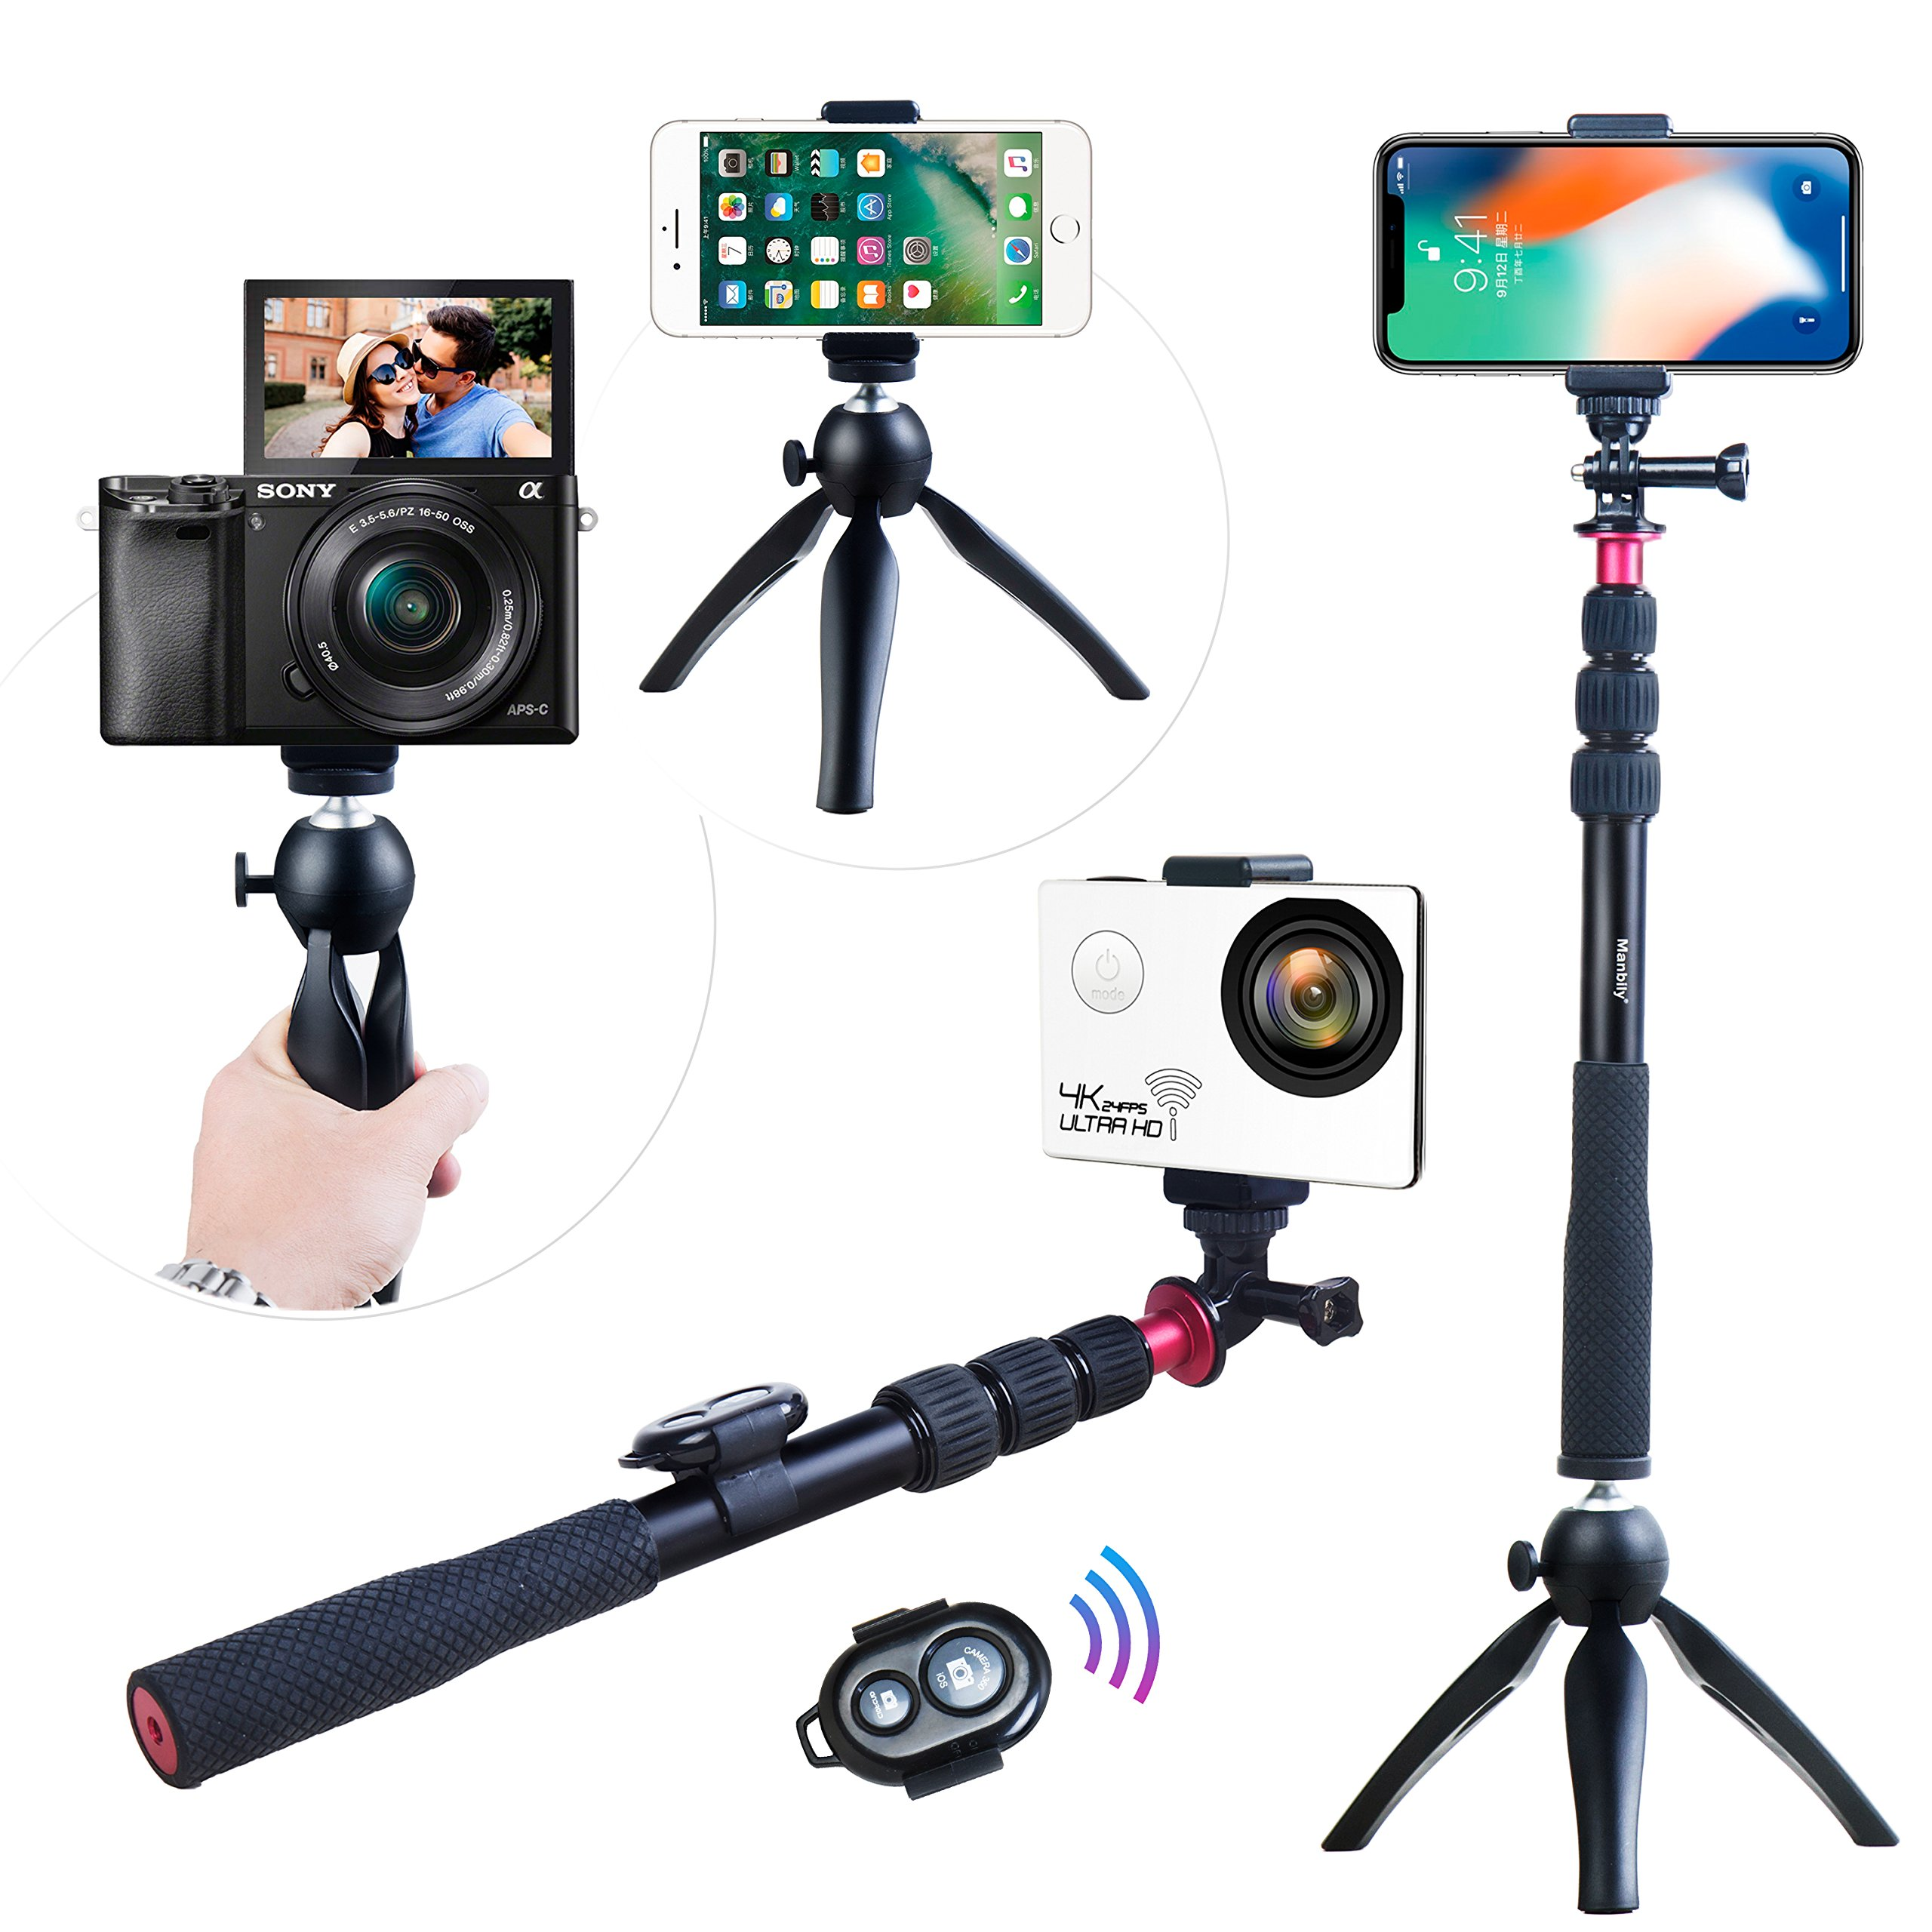 Selfie Stick,Andoer Phone Tripod for iPhone X/8/7 Plus for Samsung S8 for GoPro Hero 6/5/4/3+/3 Action Camera/ Digital Camcorder Video Mini Tripod + Phone Tripod Mount + Wireless Remote Control Valent